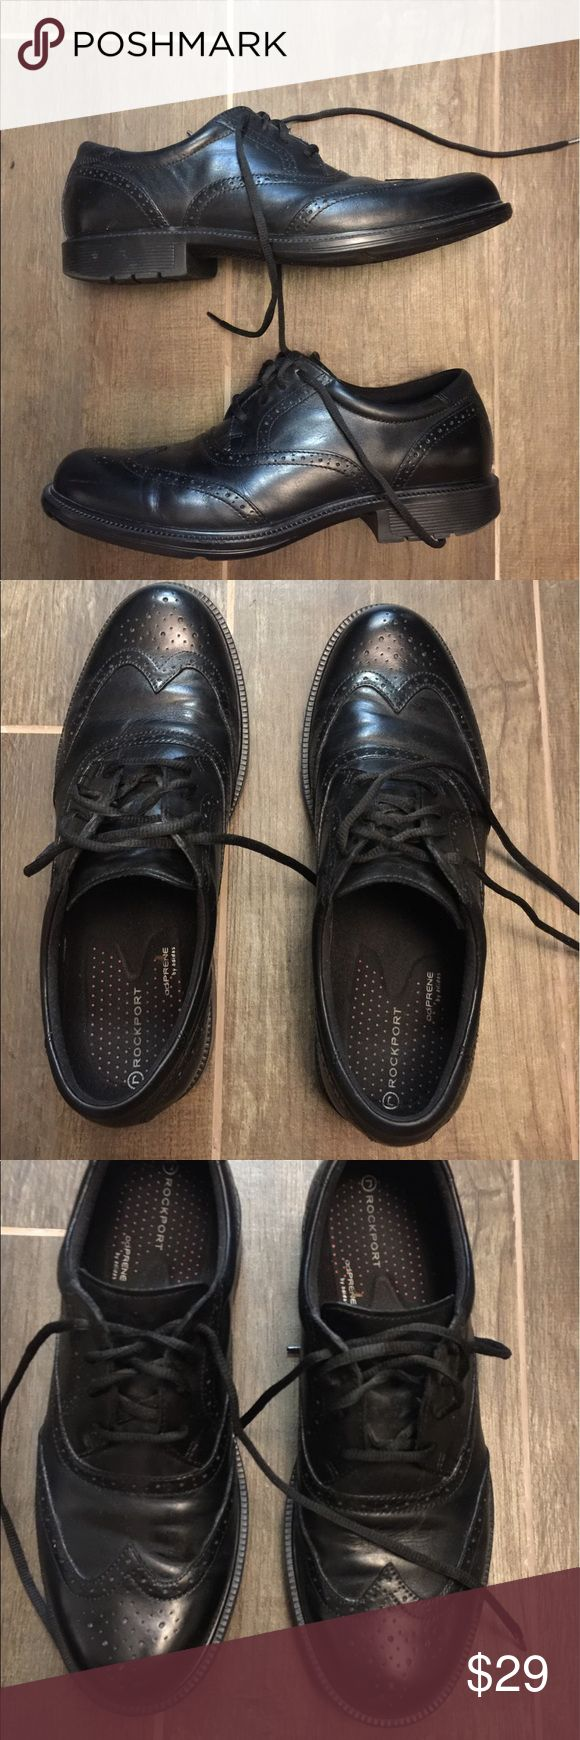 Rockport black oxfords size 9 Rockport black oxfords size 9. This is a great pair of black oxfords. They tie up and are in great shape. Please view all pictures. Rockport Shoes Oxfords & Derbys